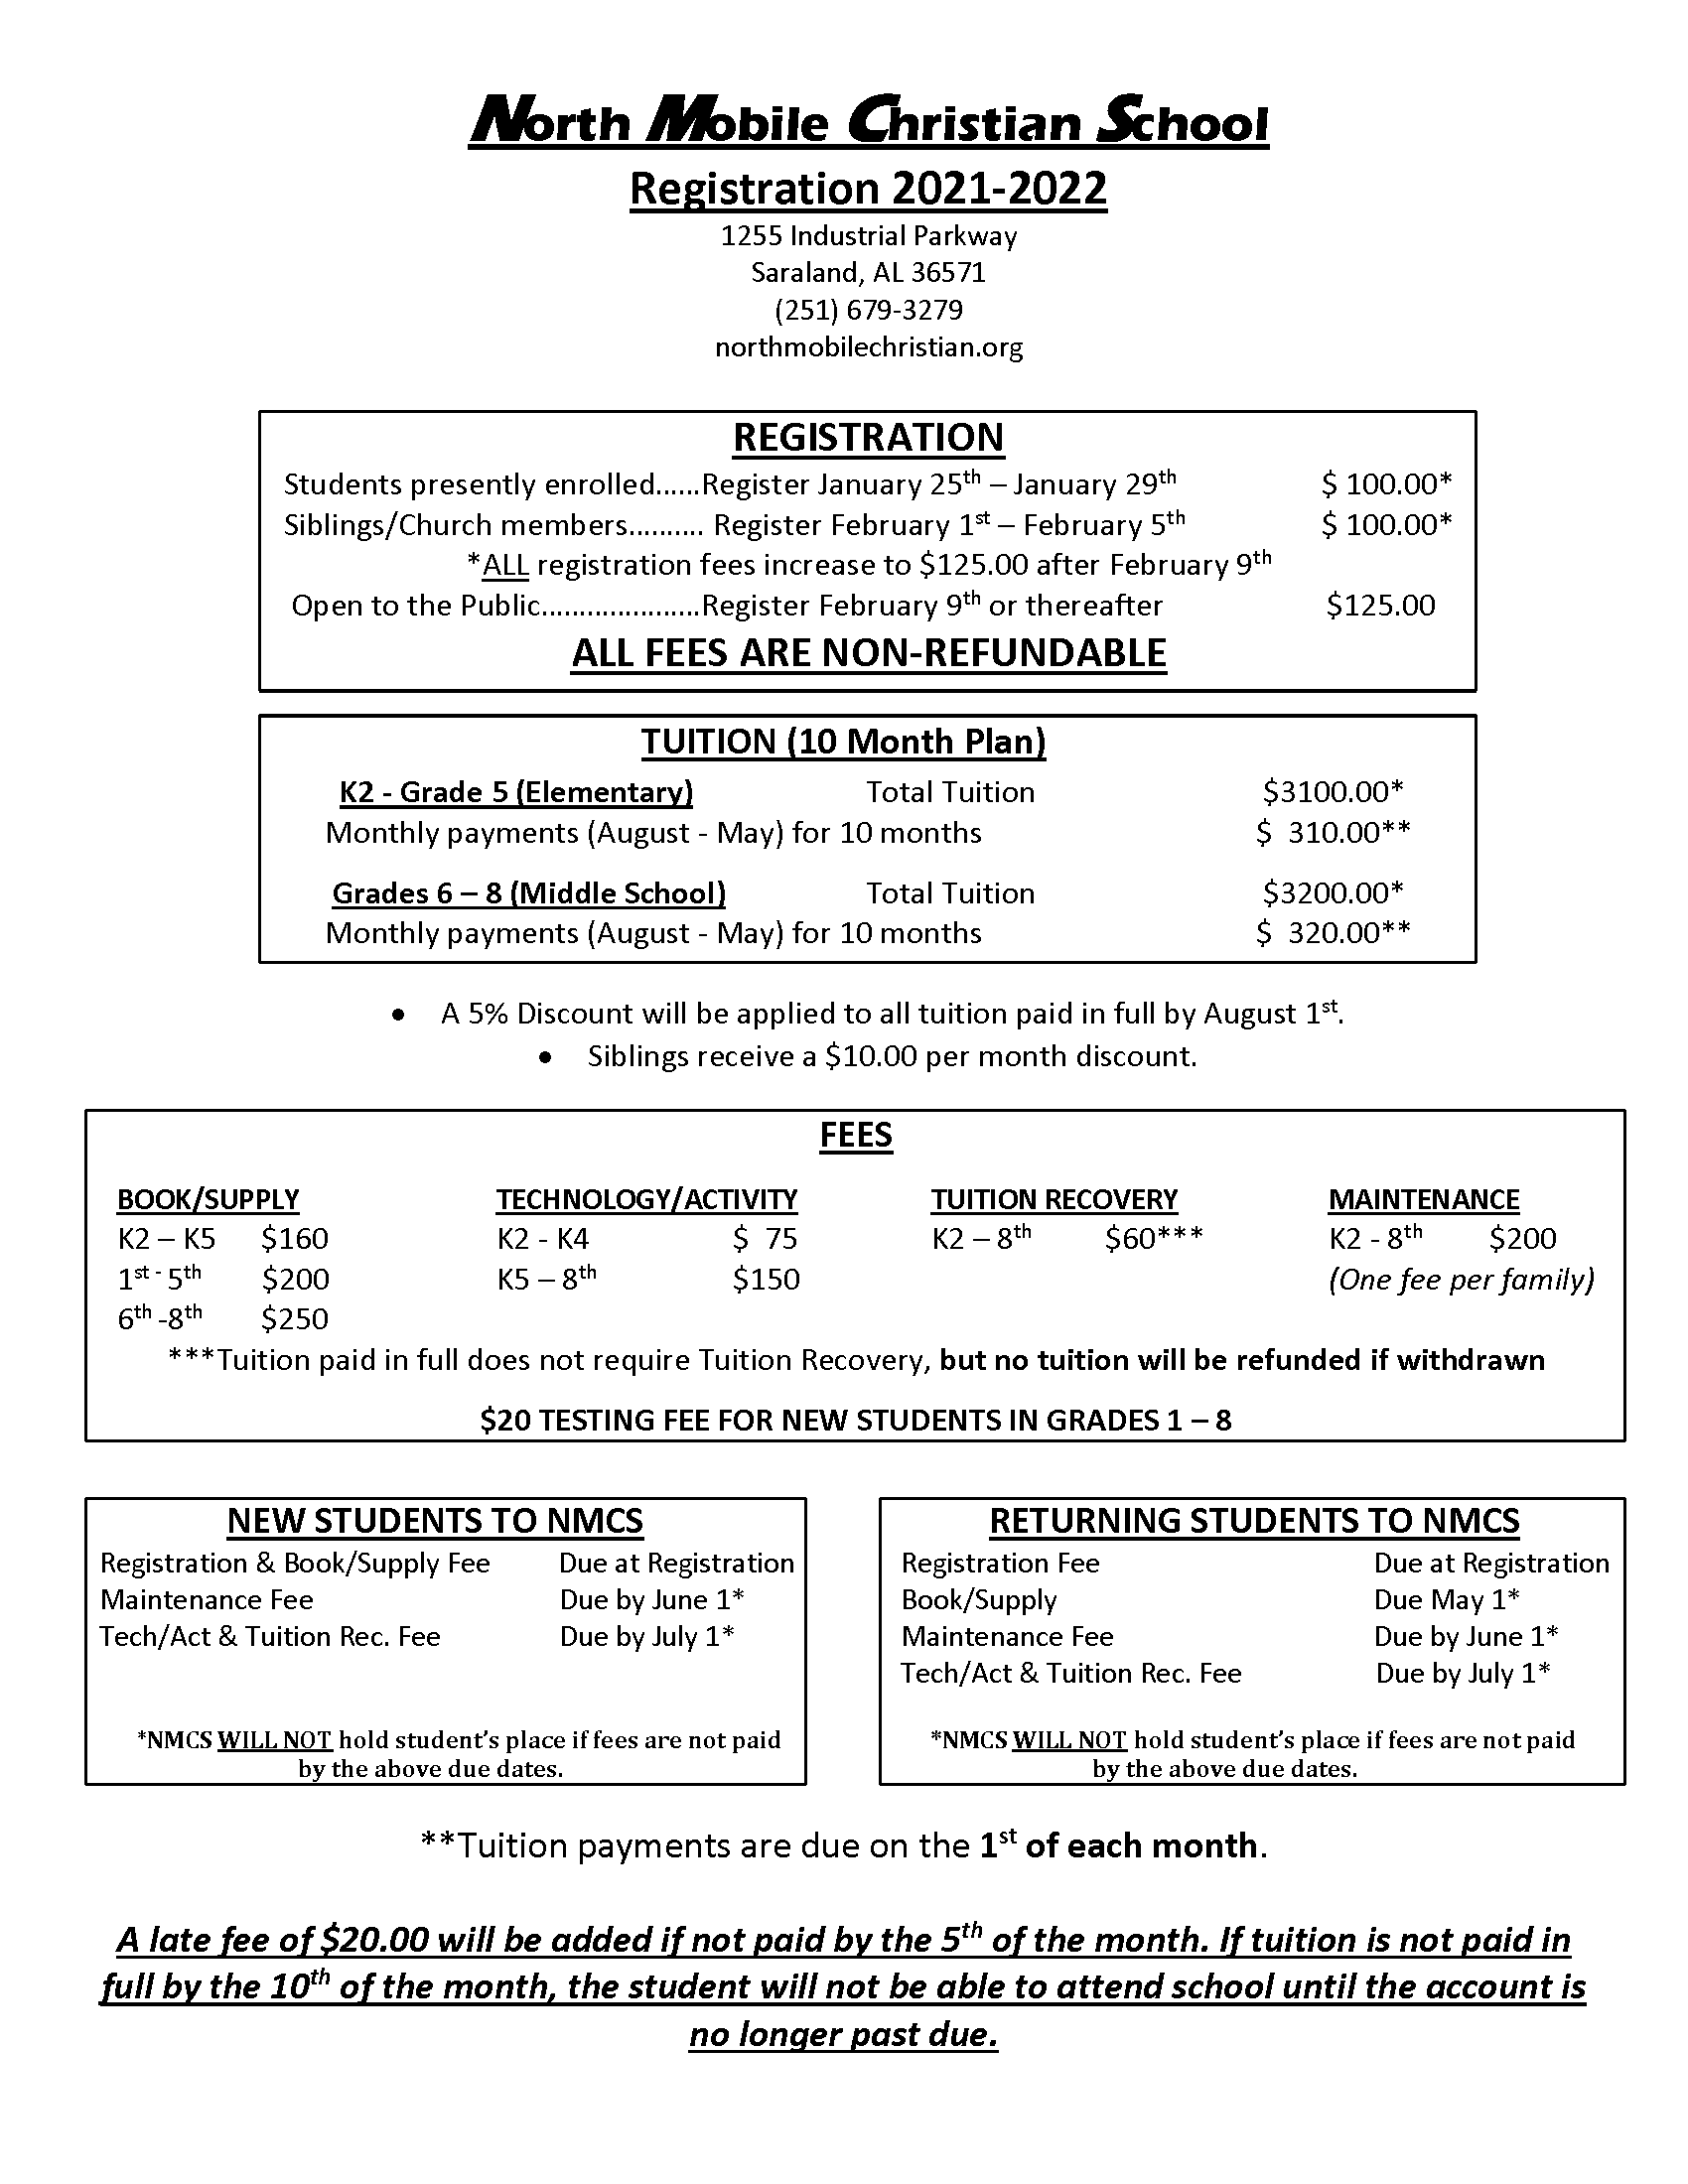 Registration and Fees